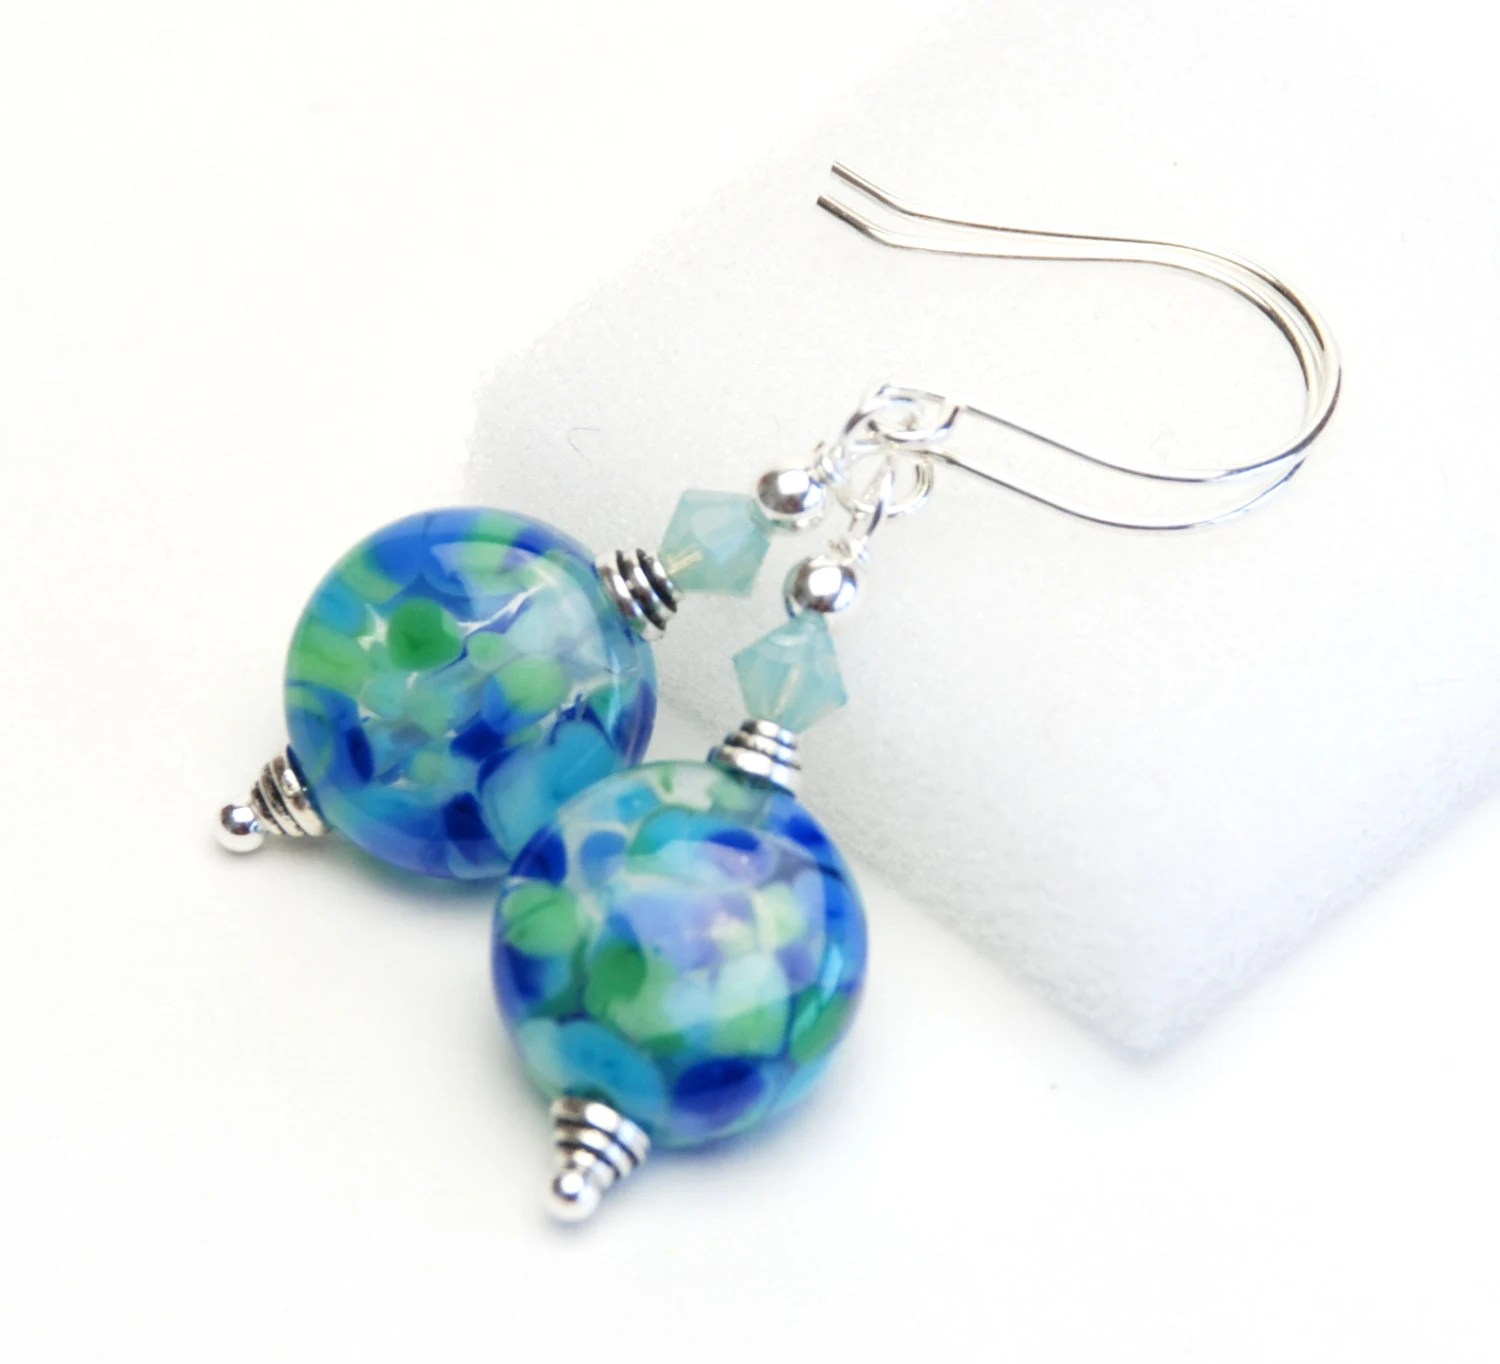 Lakeside Collection - Blue and Green Artisan Lampwork Glass and Sterling Silver Earrings - Handmade Jewelry - lilicharms